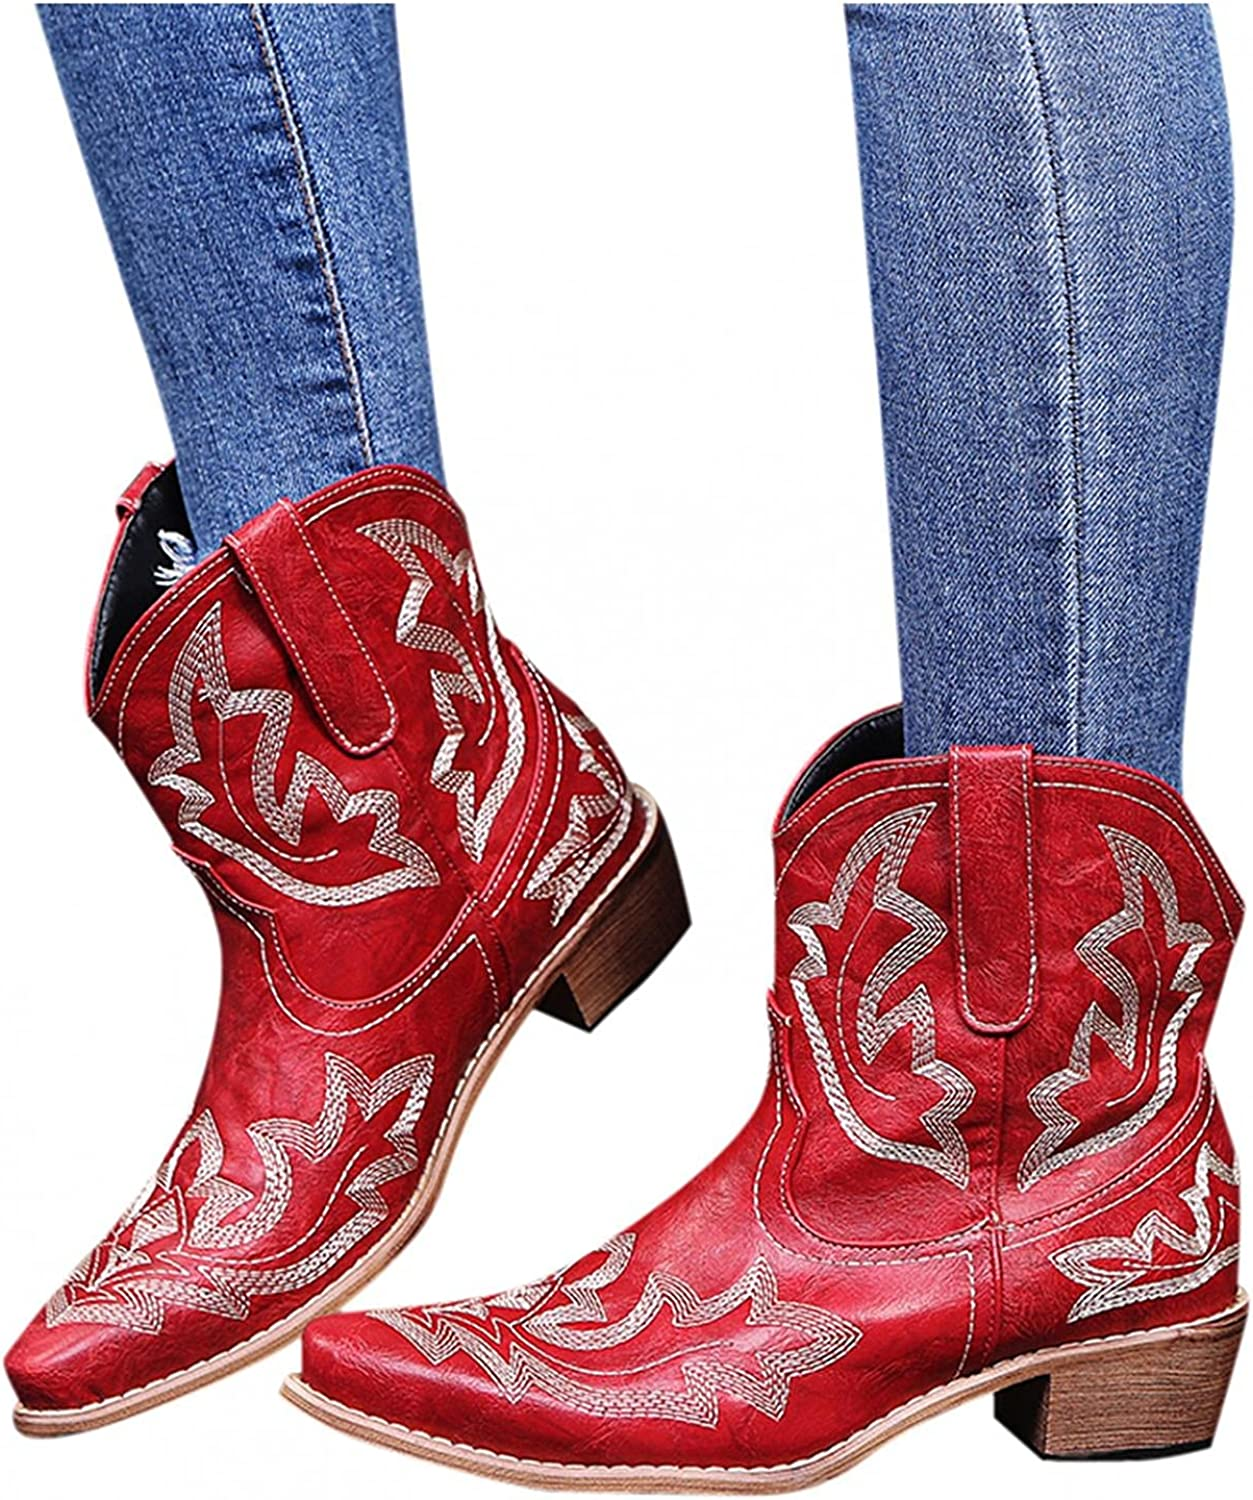 Zieglen Women's Winter Boots, Women's Boots with Retro Pattern Short Cowboy Boots Western Boots Snow Boots Motorcycle Boots